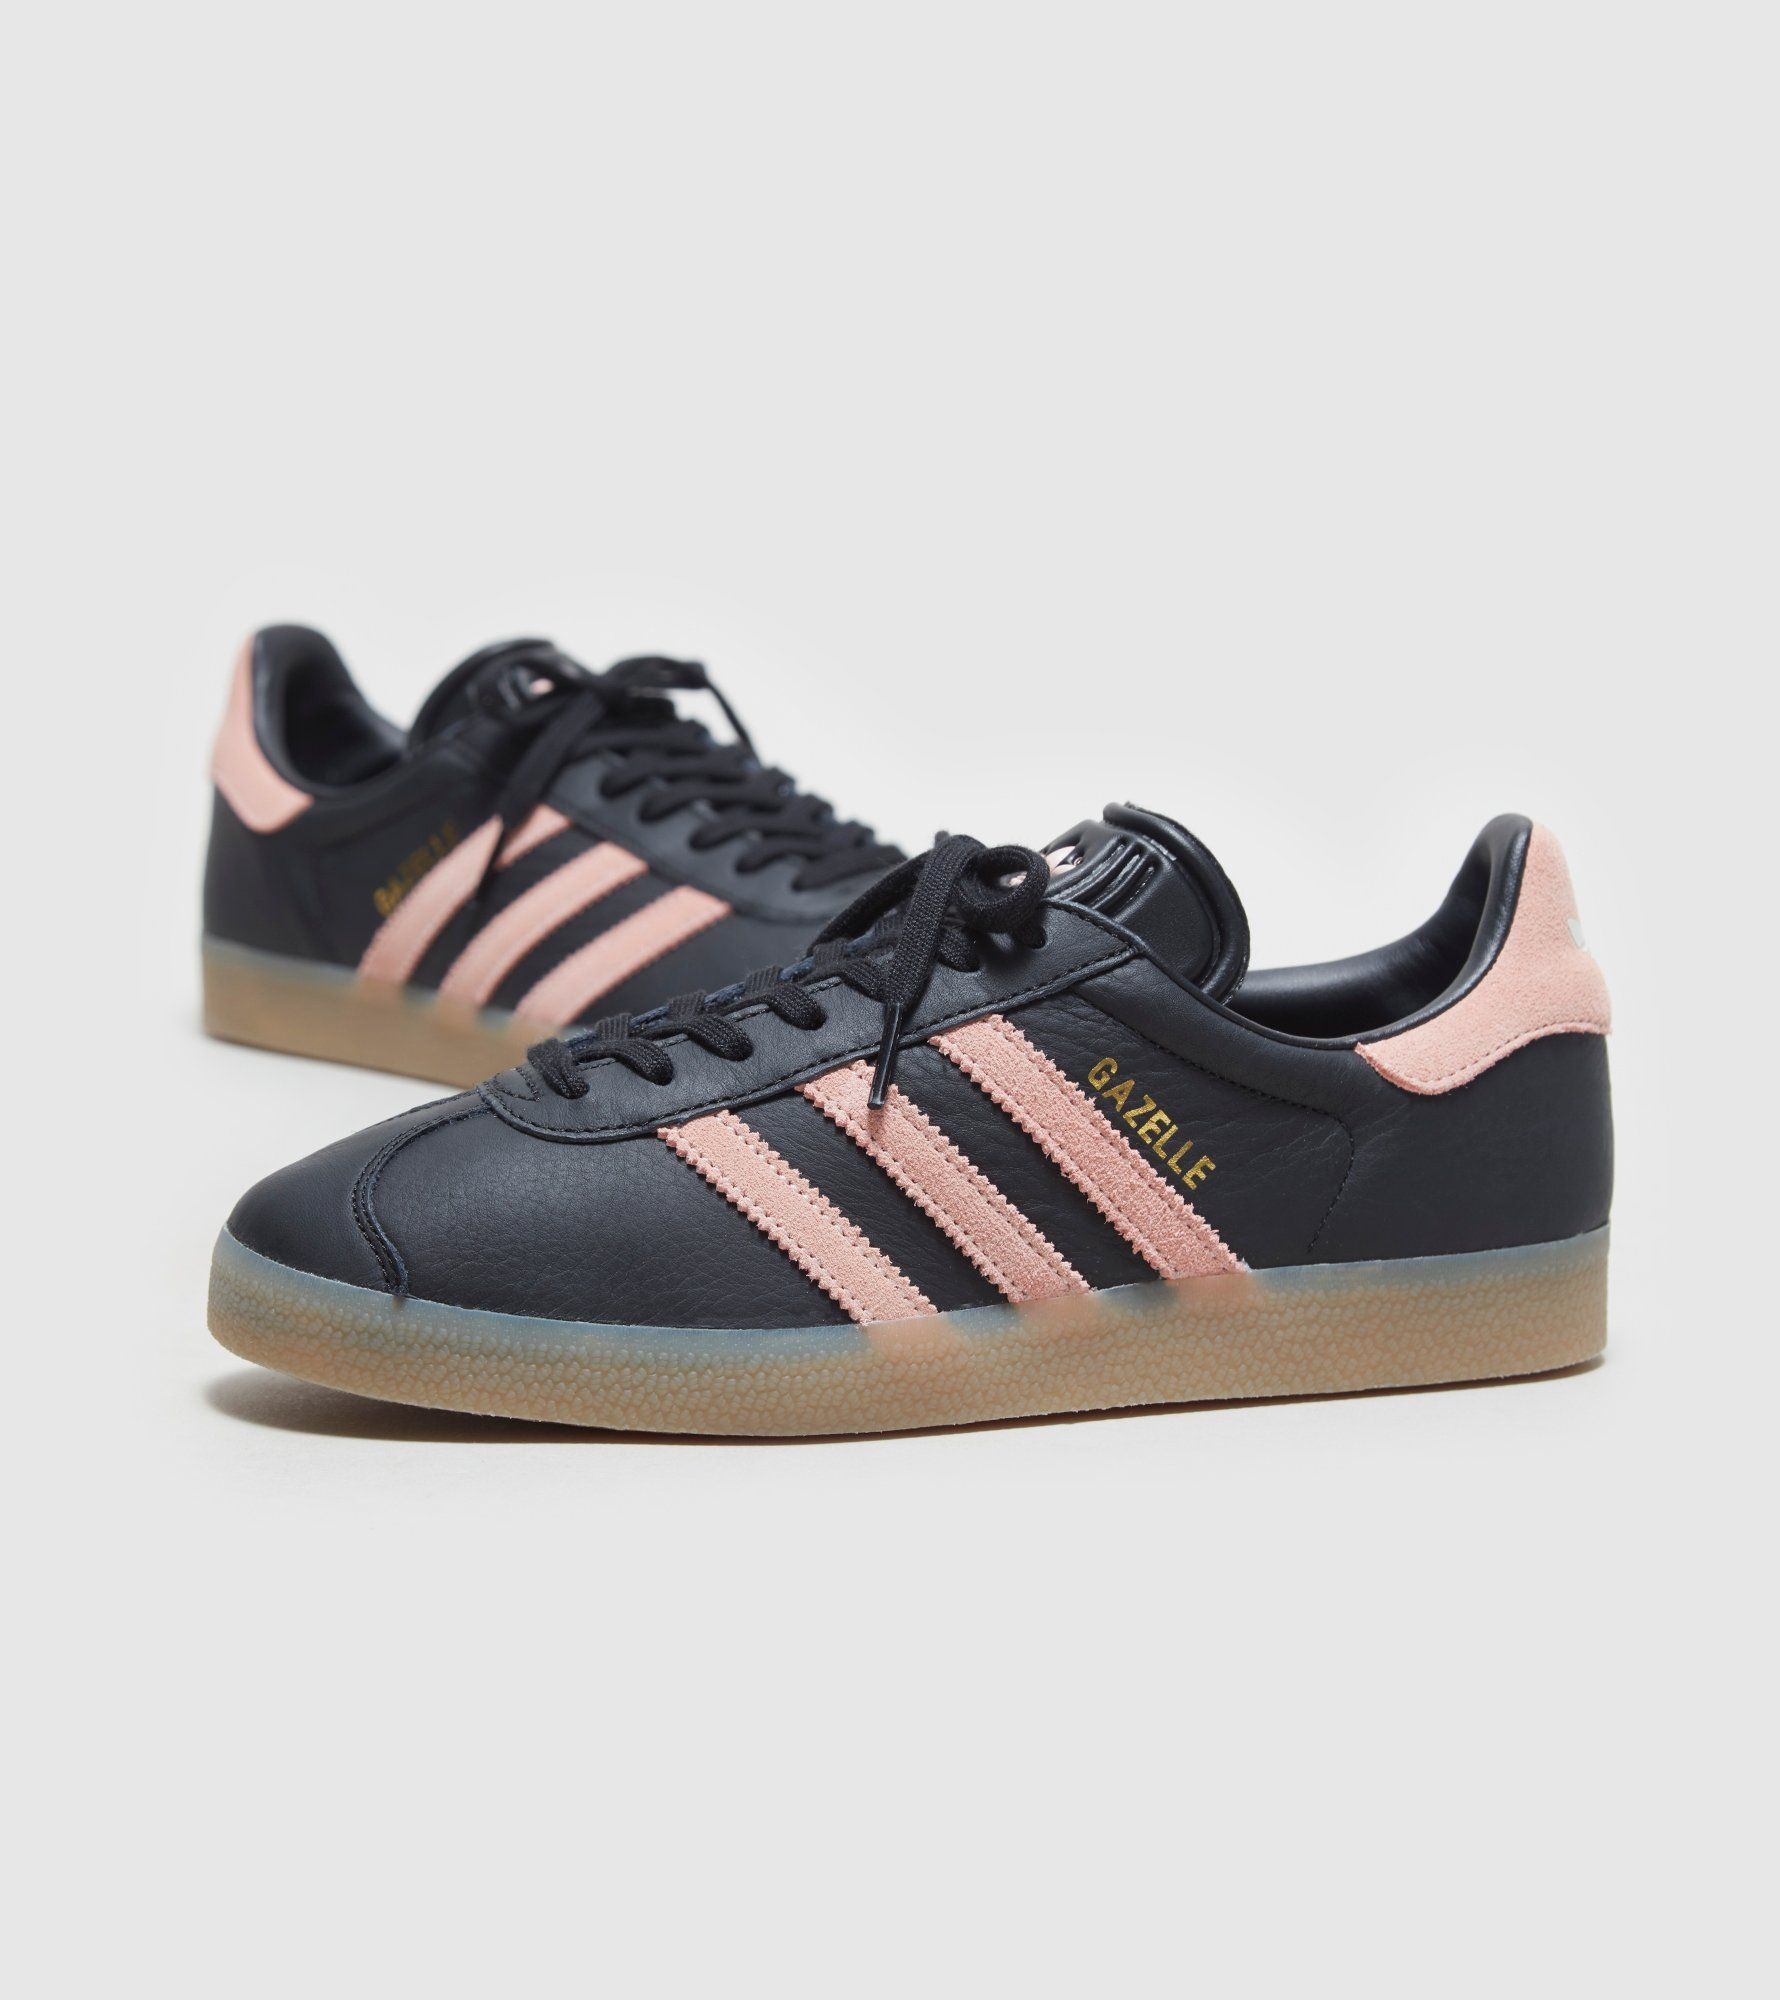 new arrival b4632 485d6 adidas Originals Gazelle Women s - find out more on our site. Find the freshest  in trainers and clothing online now.